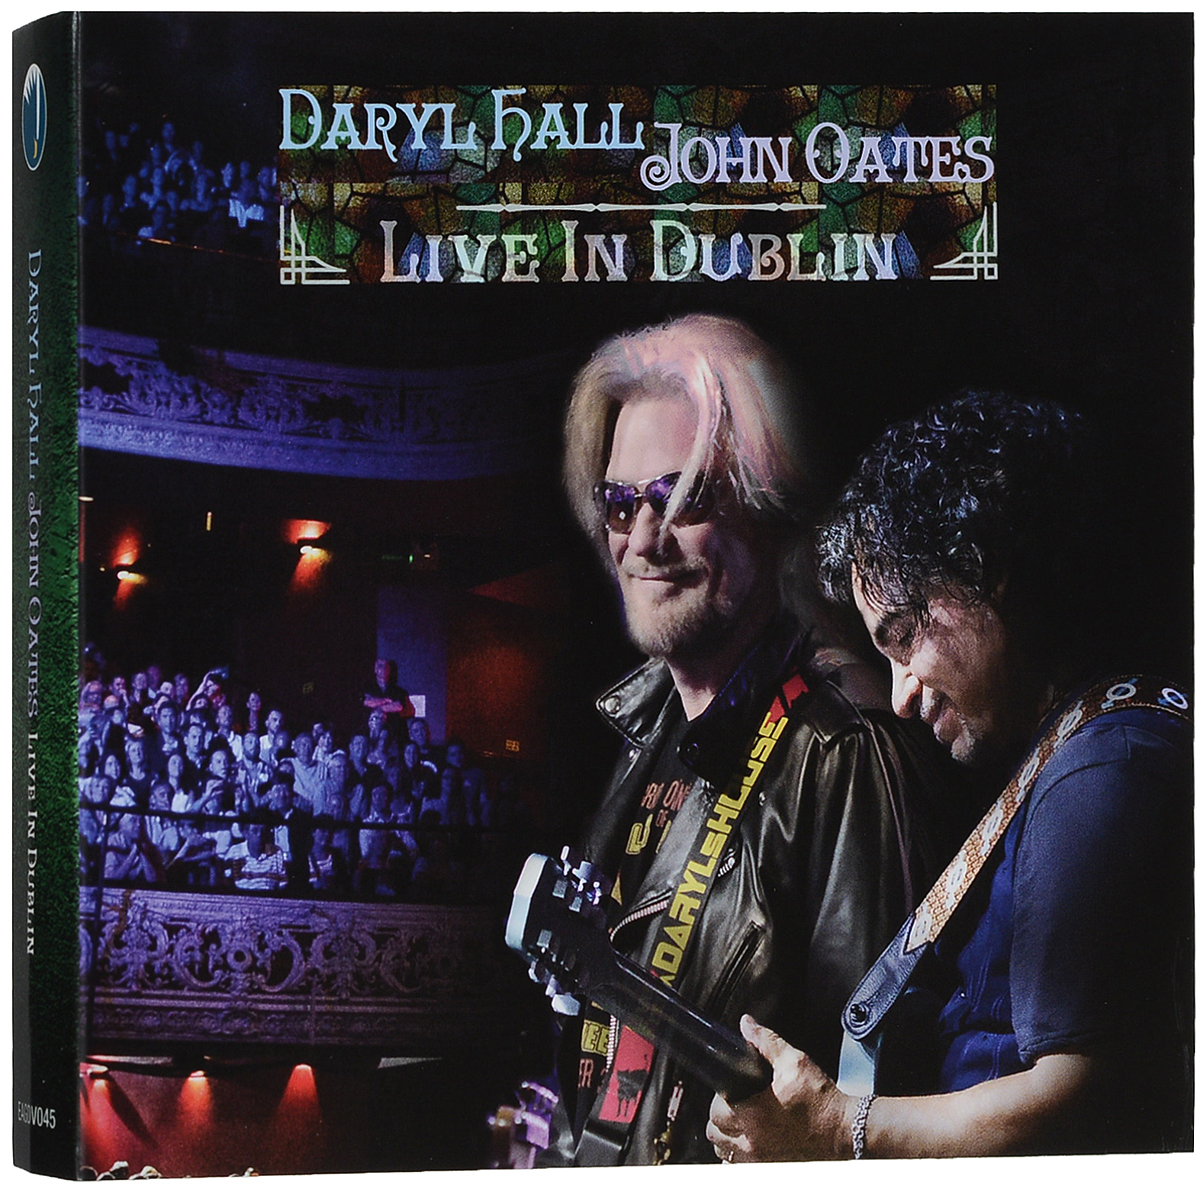 Дэрил Холл,Джон Оатс Daryl Hall, John Oates. Live In Dublin (2 CD + DVD) стоимость